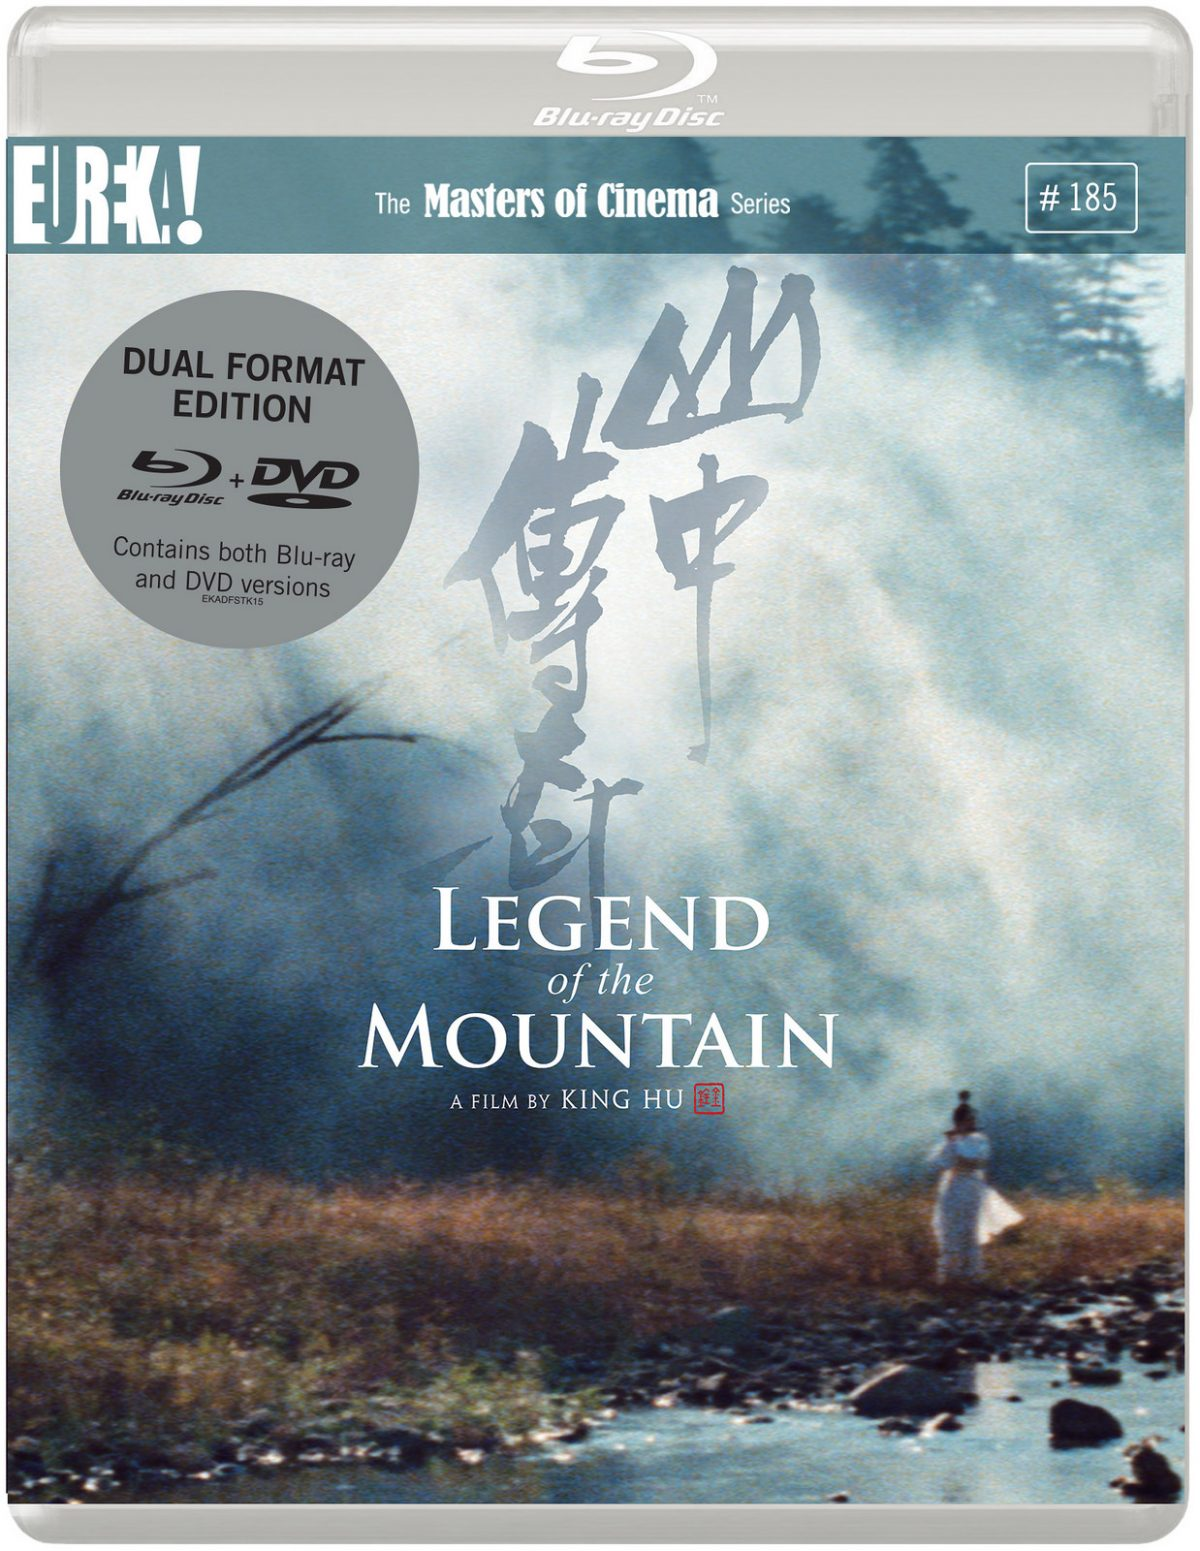 Blazing Minds has got together with Eureka Entertainment to bring you the chance to win their latest release LEGEND OF THE MOUNTAIN, the beautifully restored directors' cut of a King Hu masterpiece